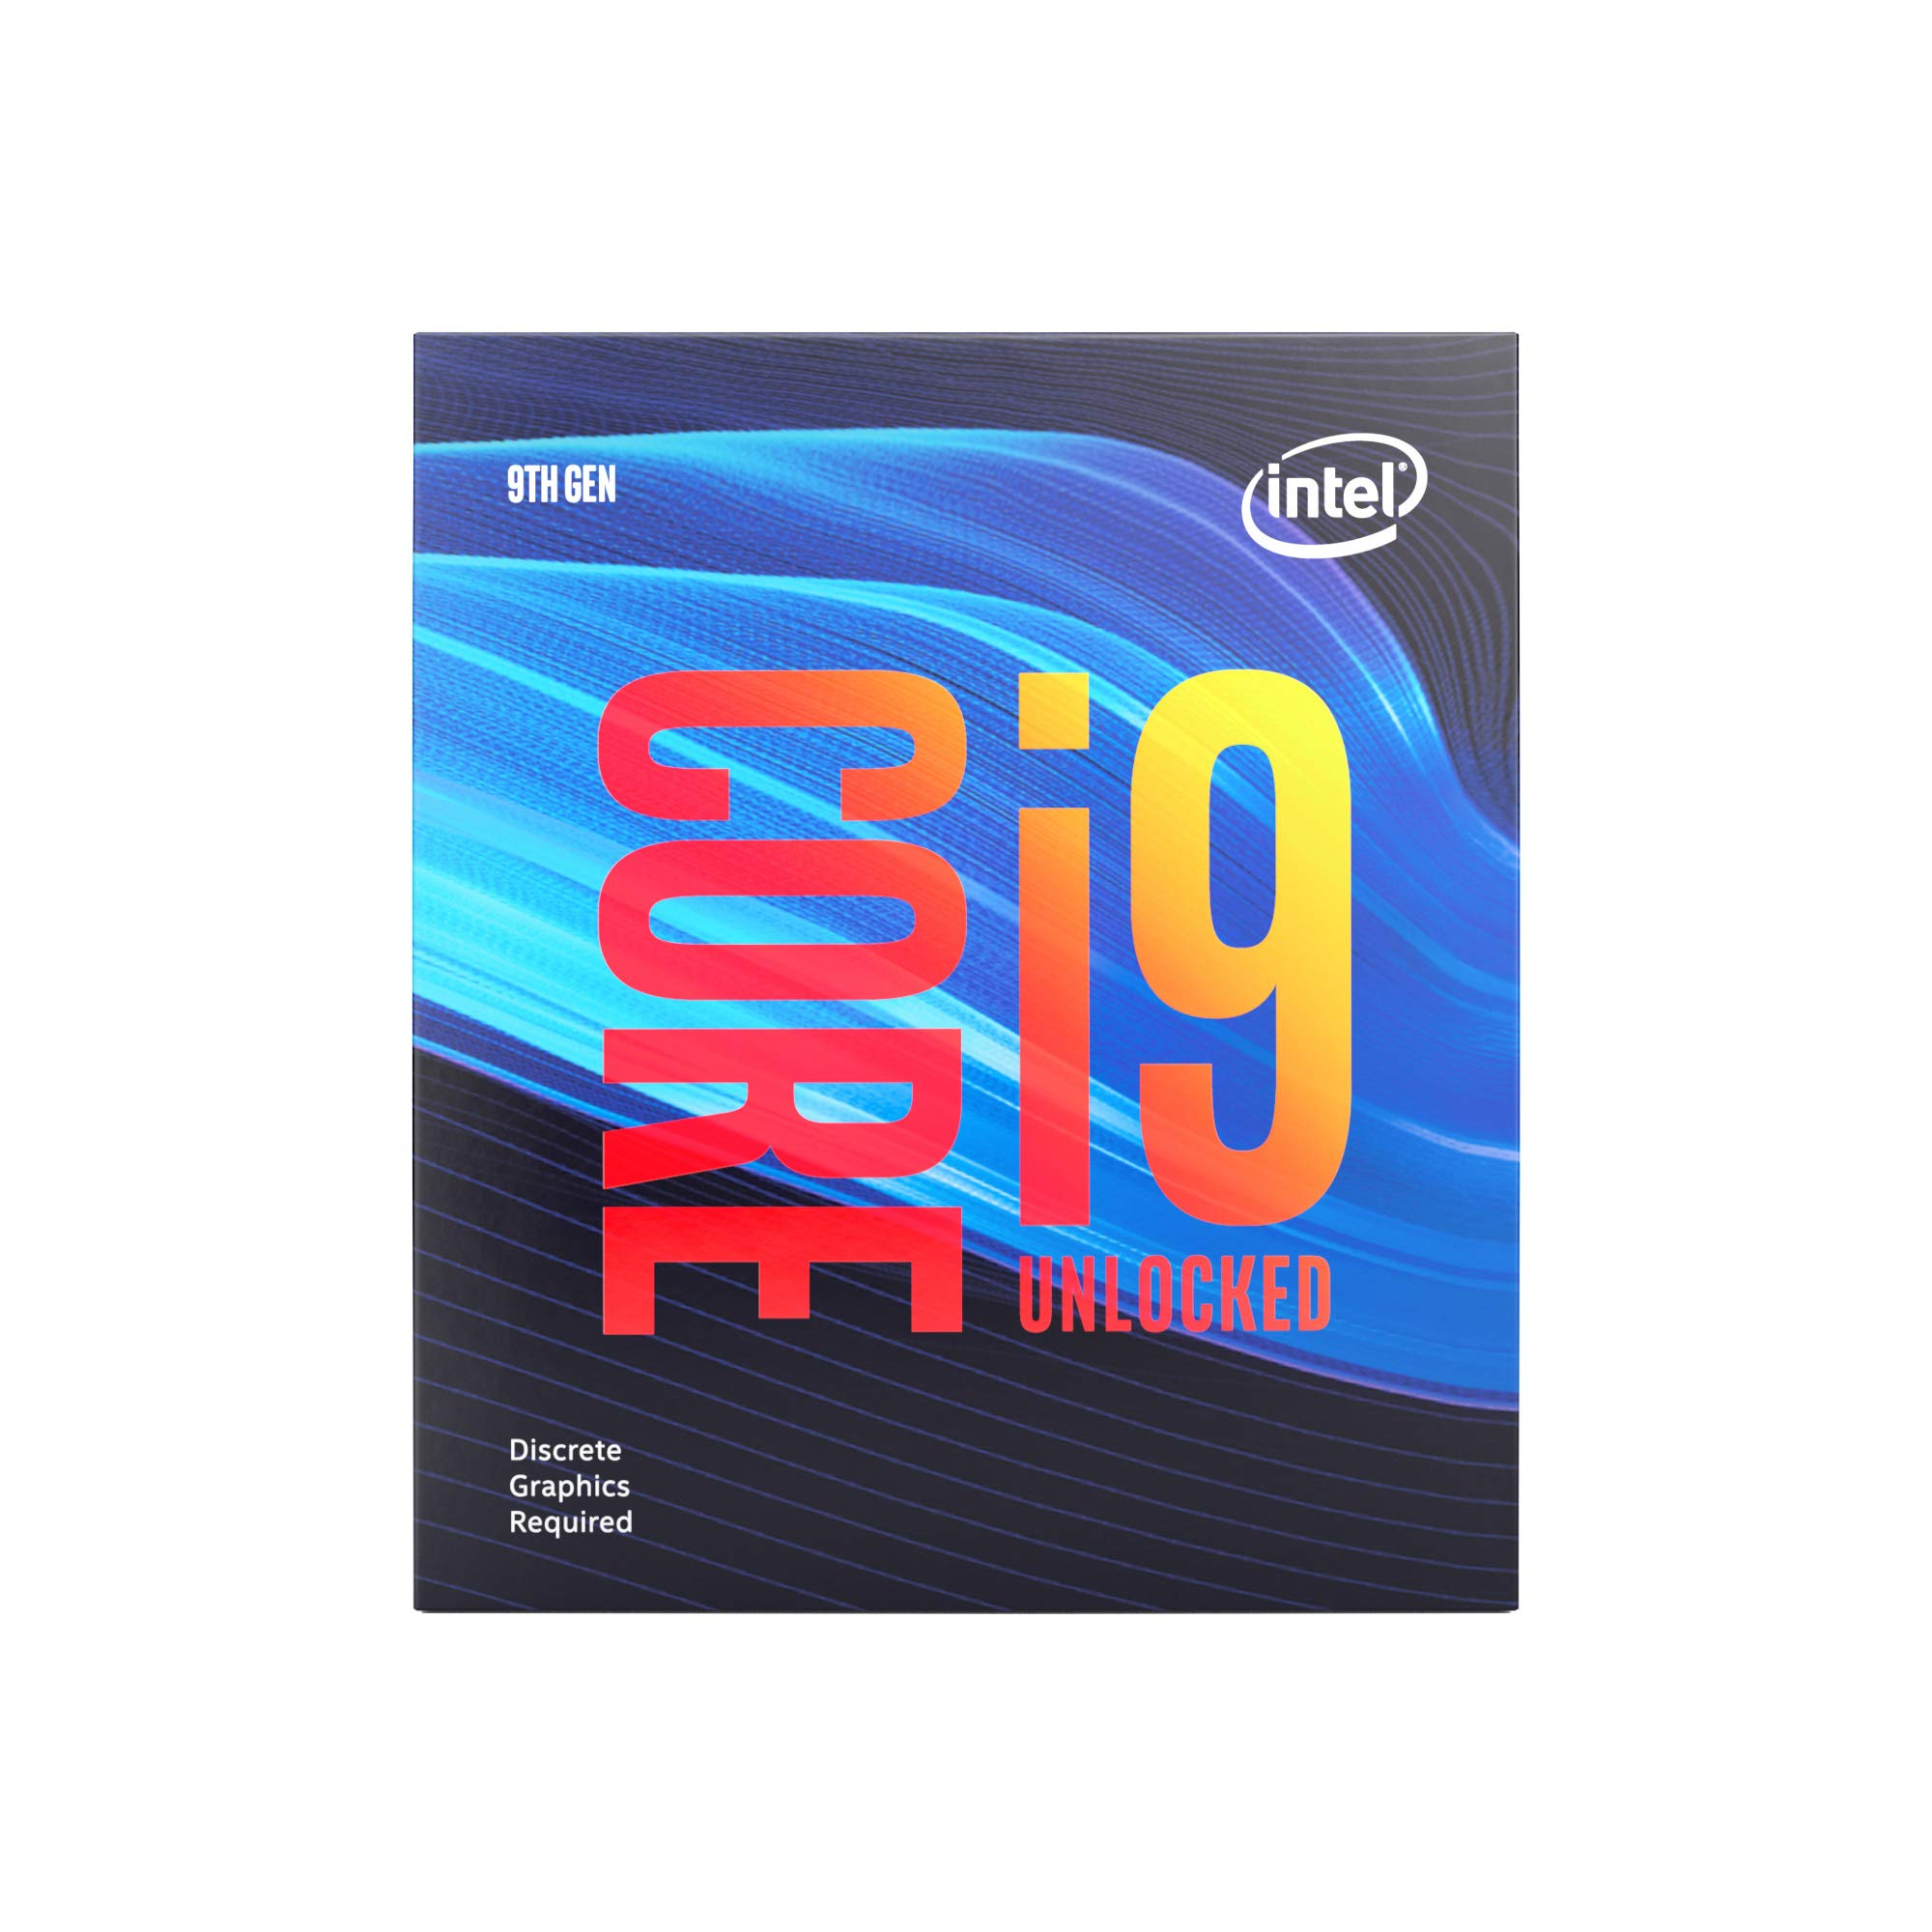 Intel BX80684I99900KF Intel Core i9-9900KF 8 Cores up to 5.0